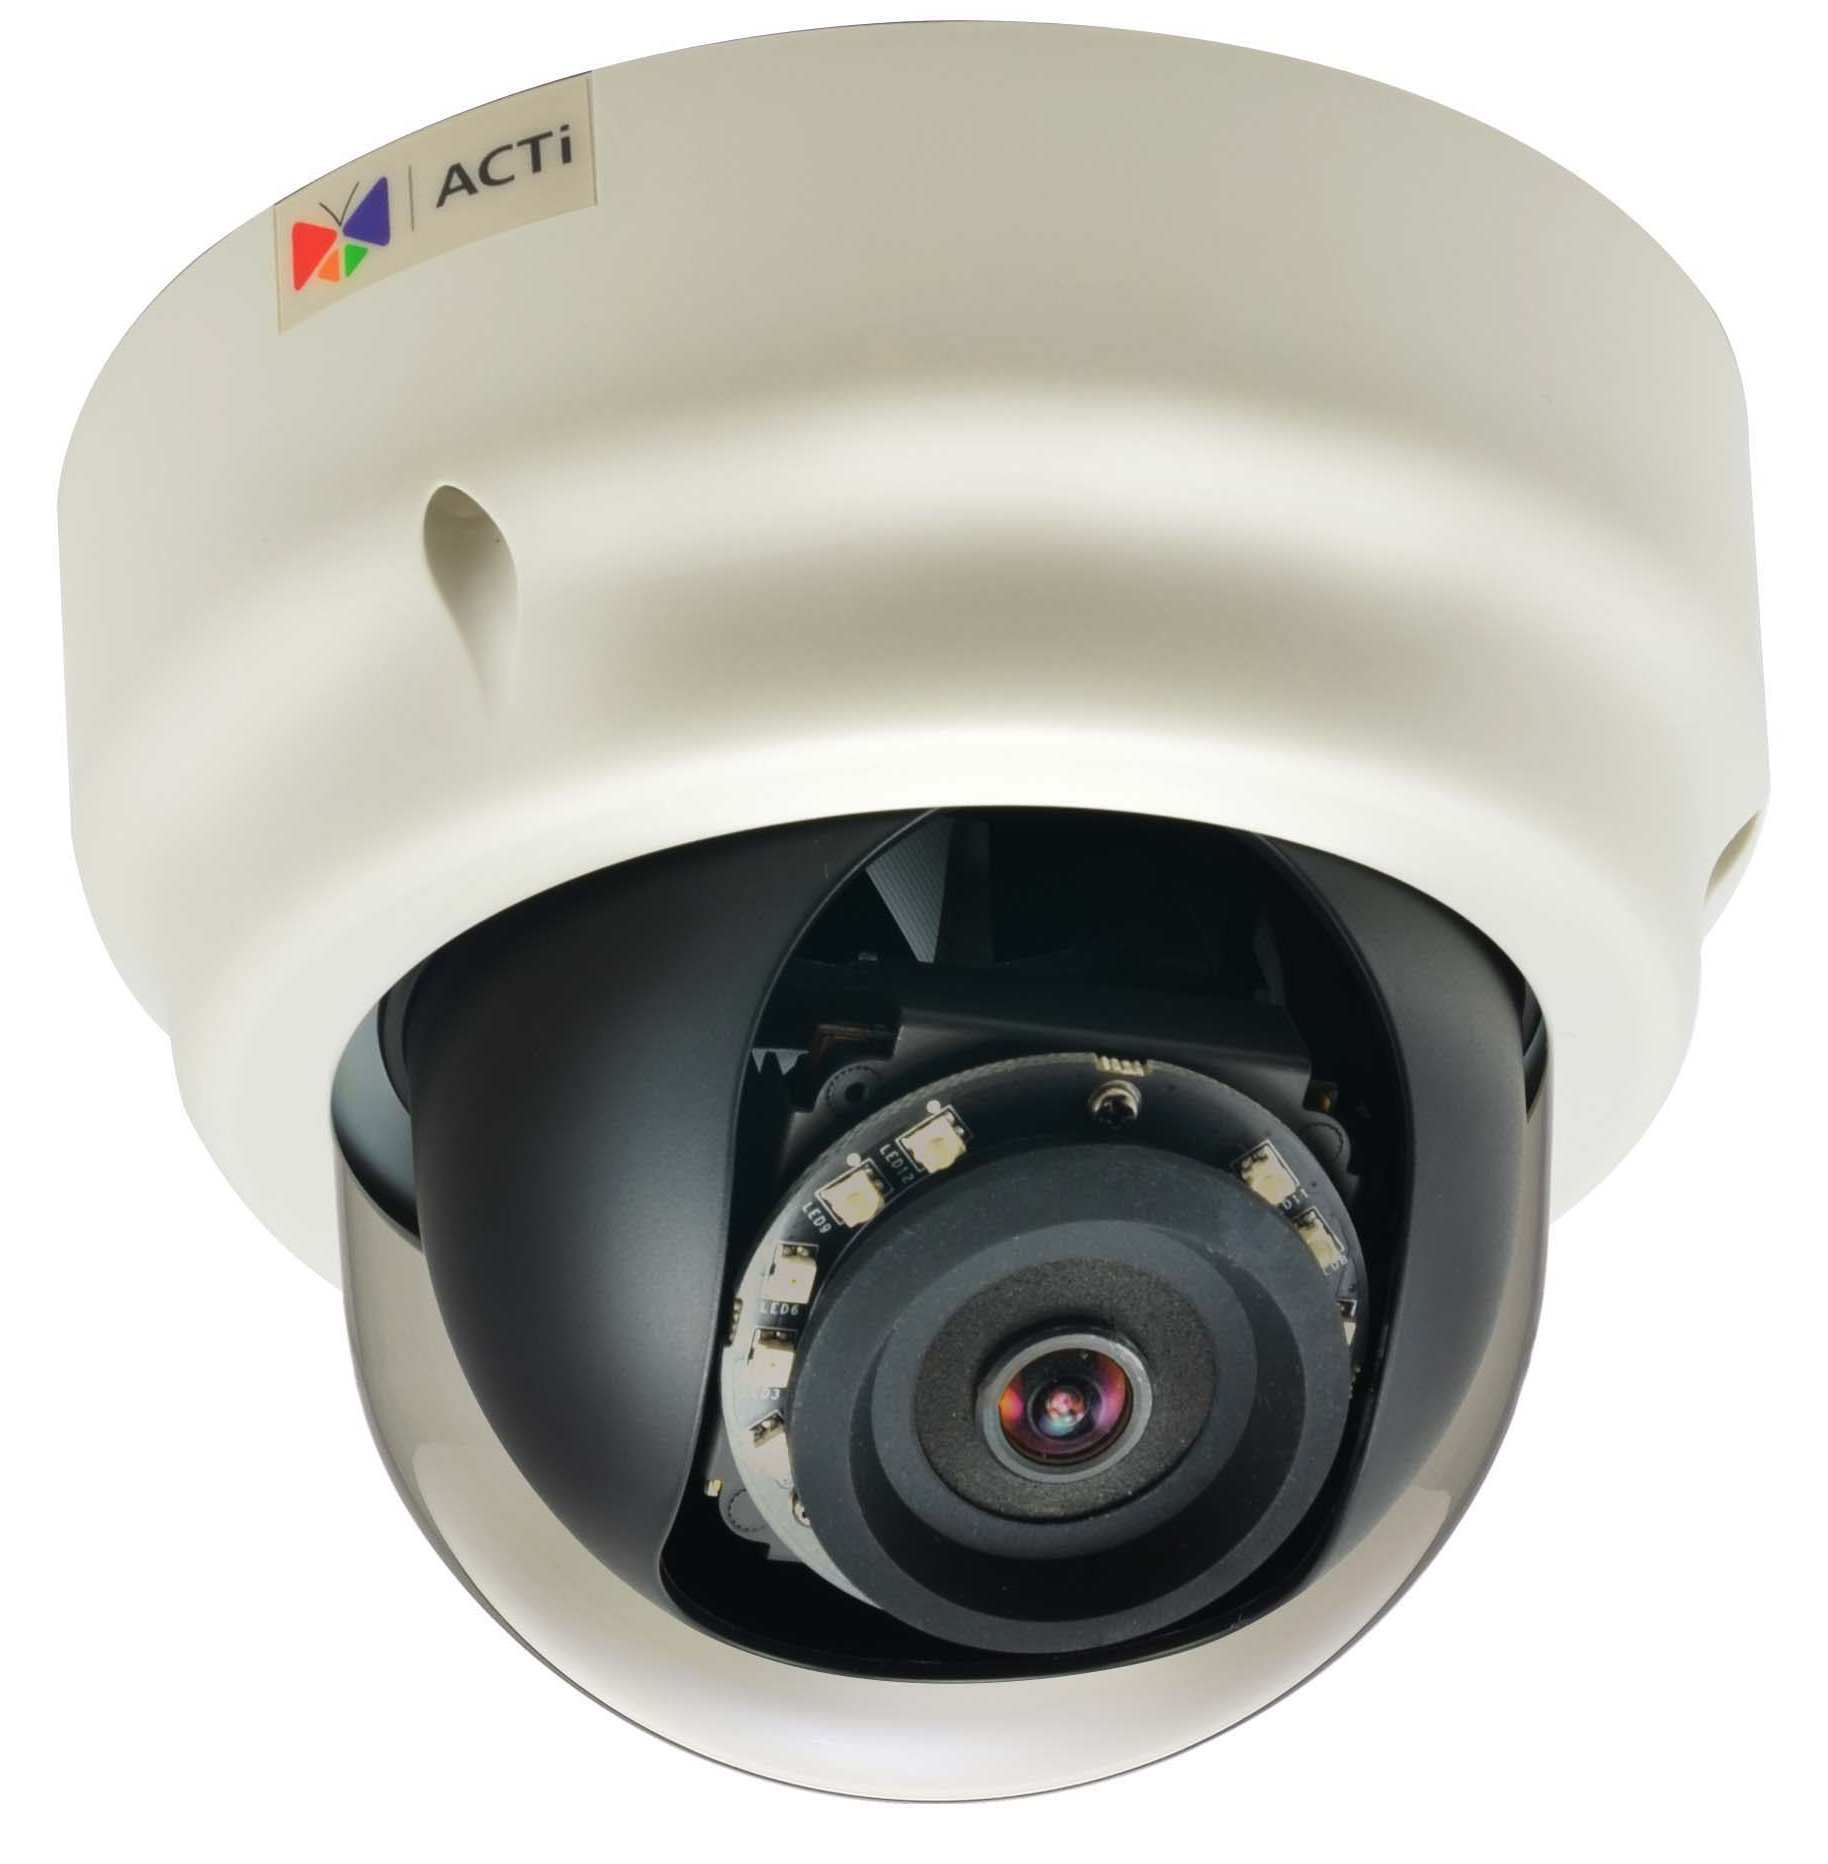 ACTi B53,F.Dome,3M,ID,f1.9mm,PoE/DC,WDR,IR